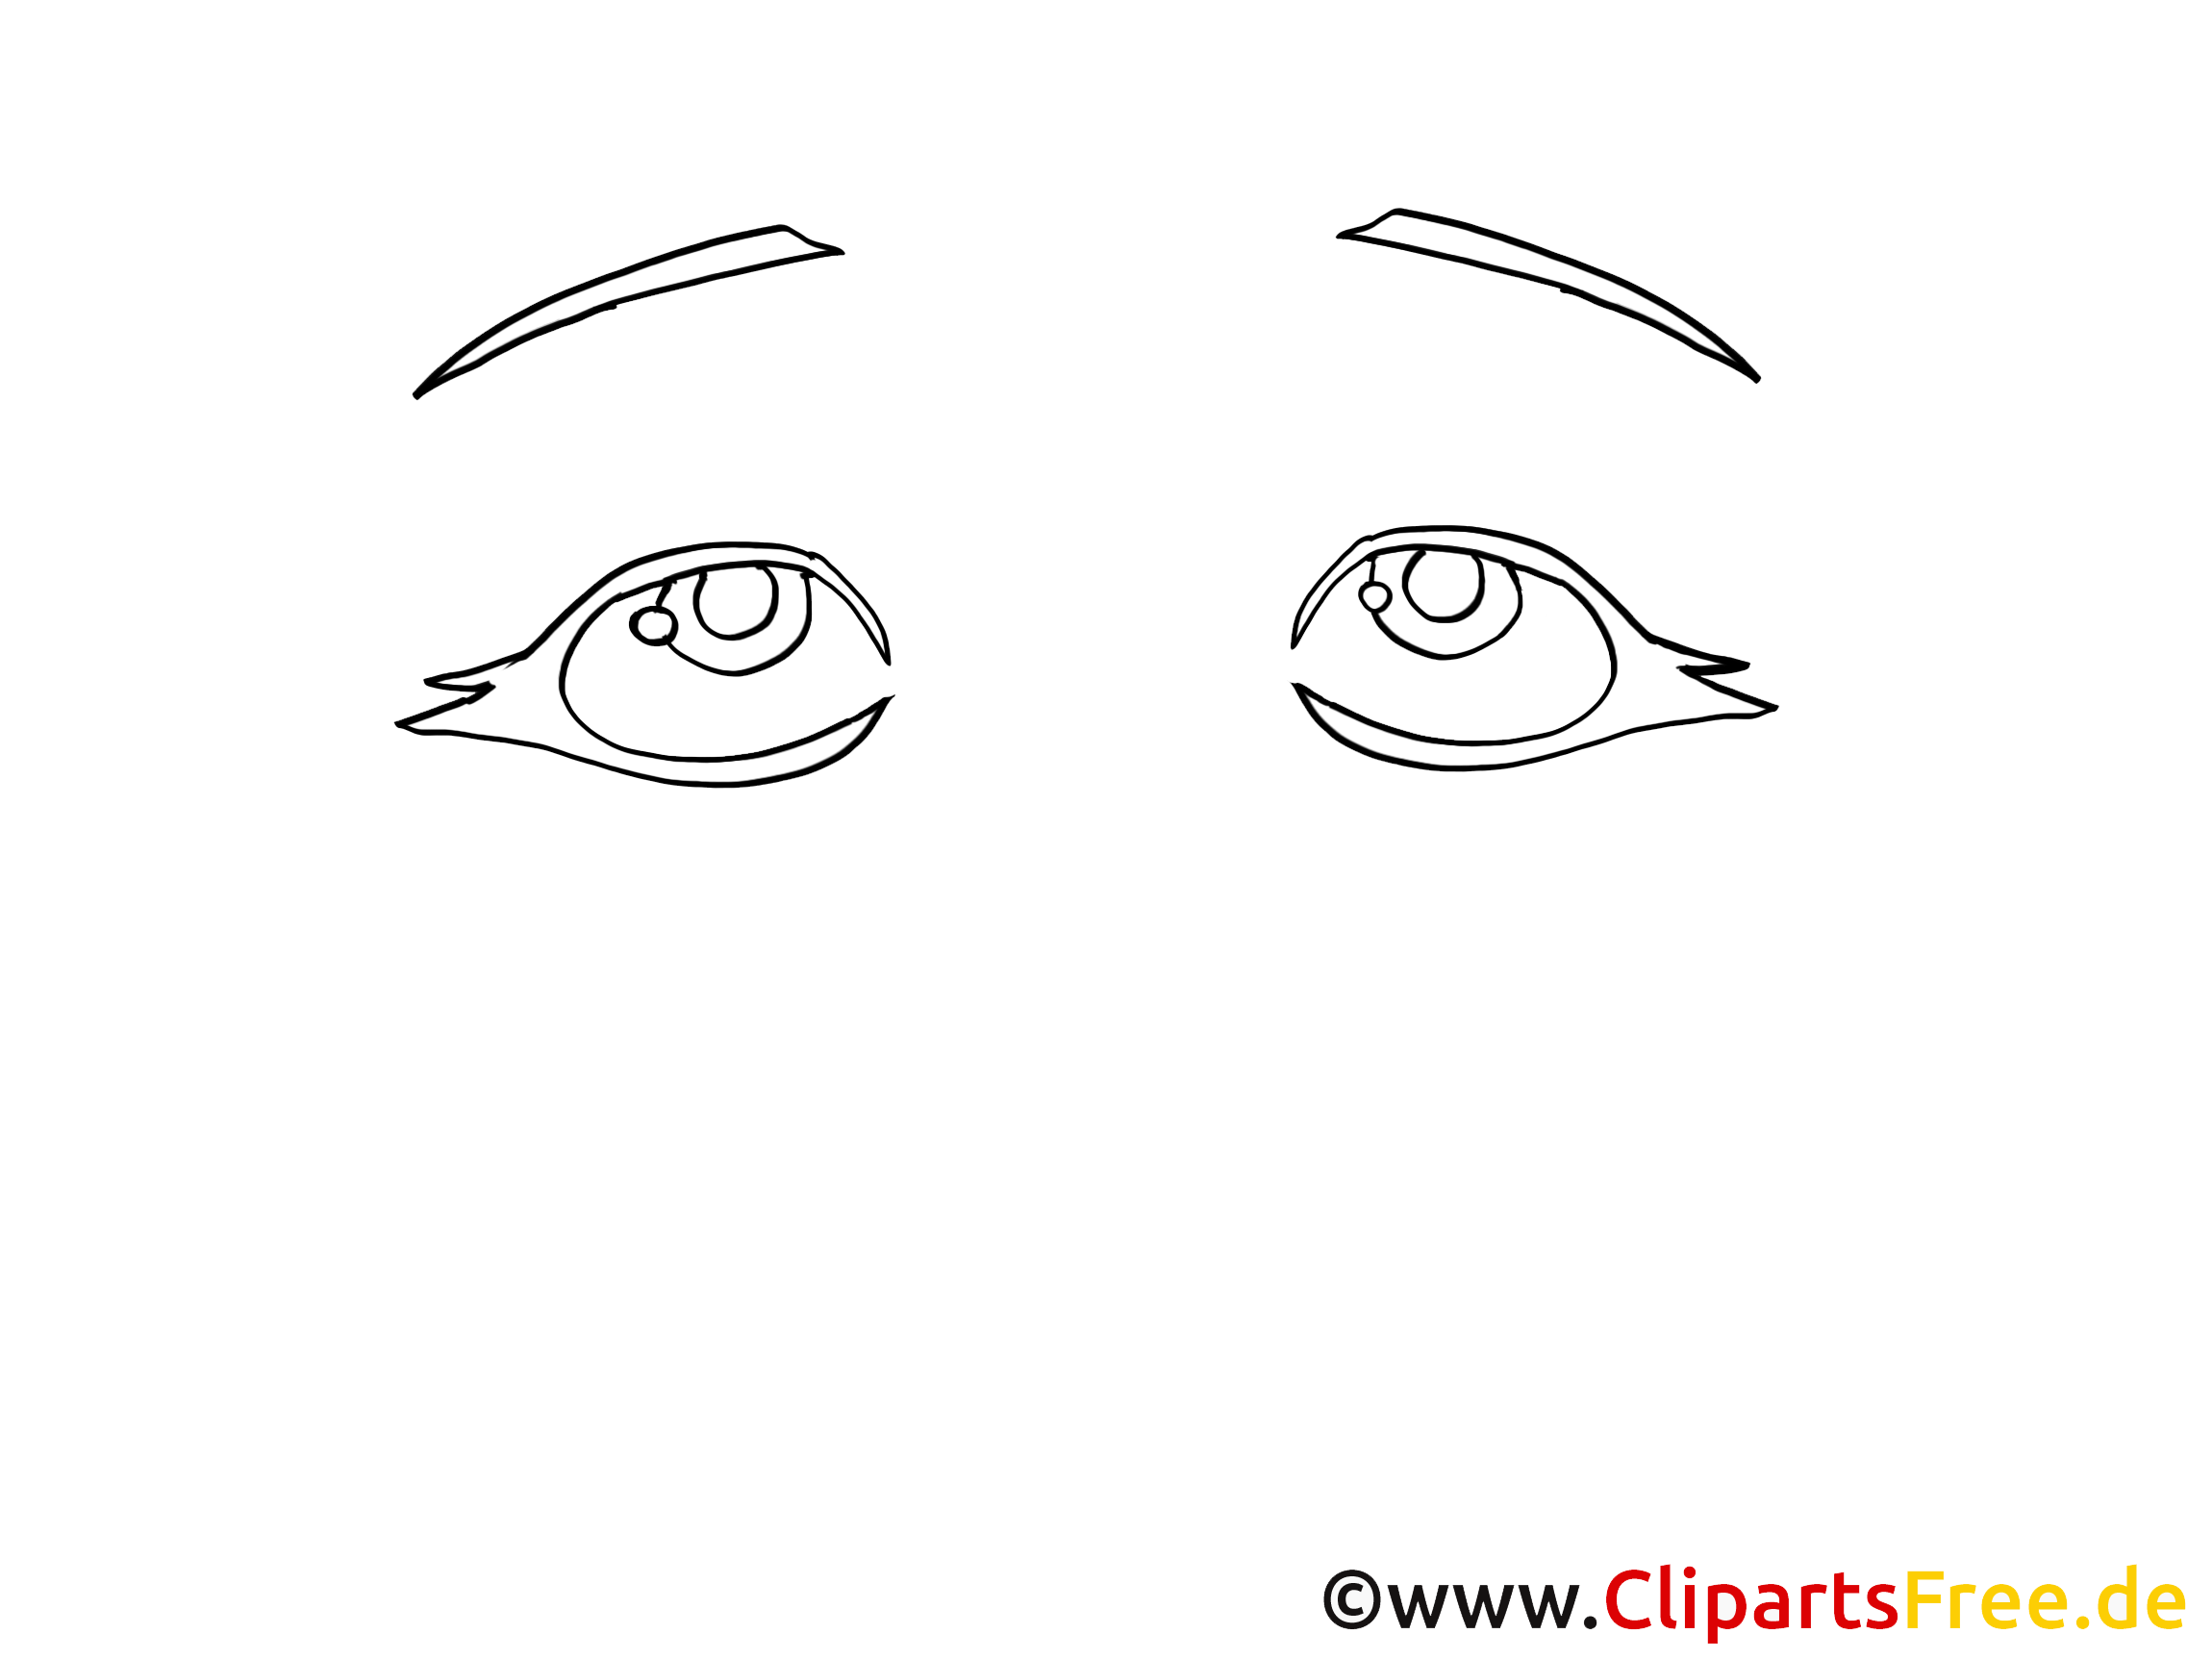 Coloriage yeux image – Dessin images cliparts